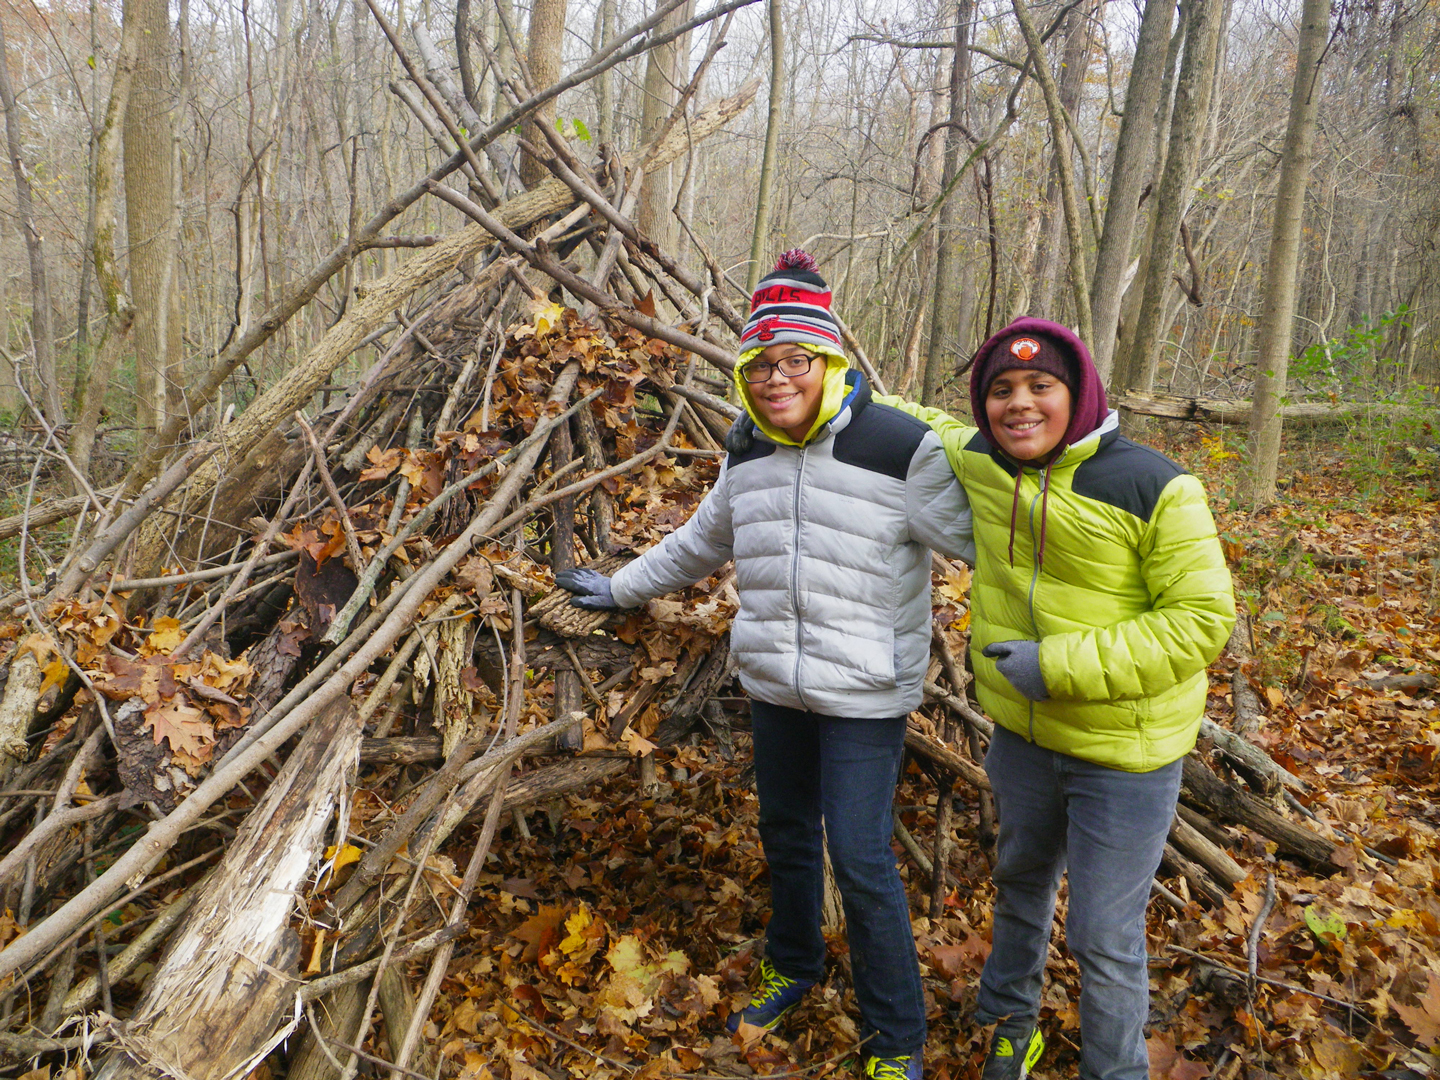 Two kids at the entrance to the fort they built in the natural play area at Sharon Woods. Allison Shaw